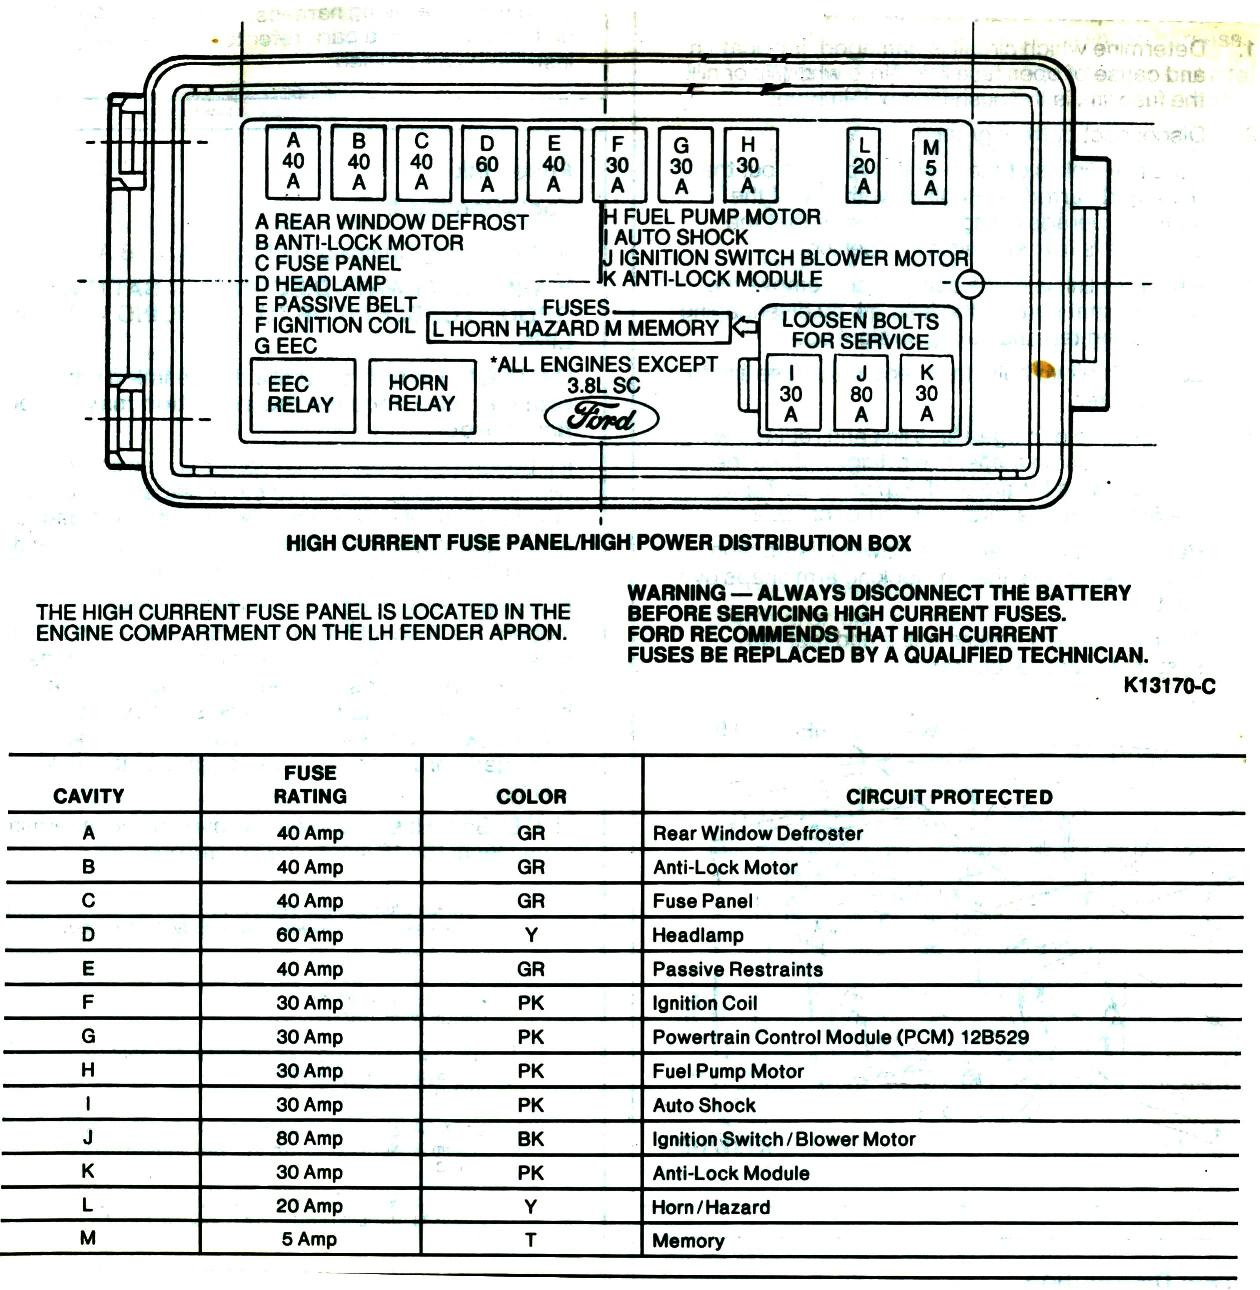 hight resolution of 96 thunderbird fuse box wiring diagram blogs rh 16 5 1 restaurant freinsheimer hof de 1996 ford mustang fuse box diagram 1996 ford windstar fuse box diagram